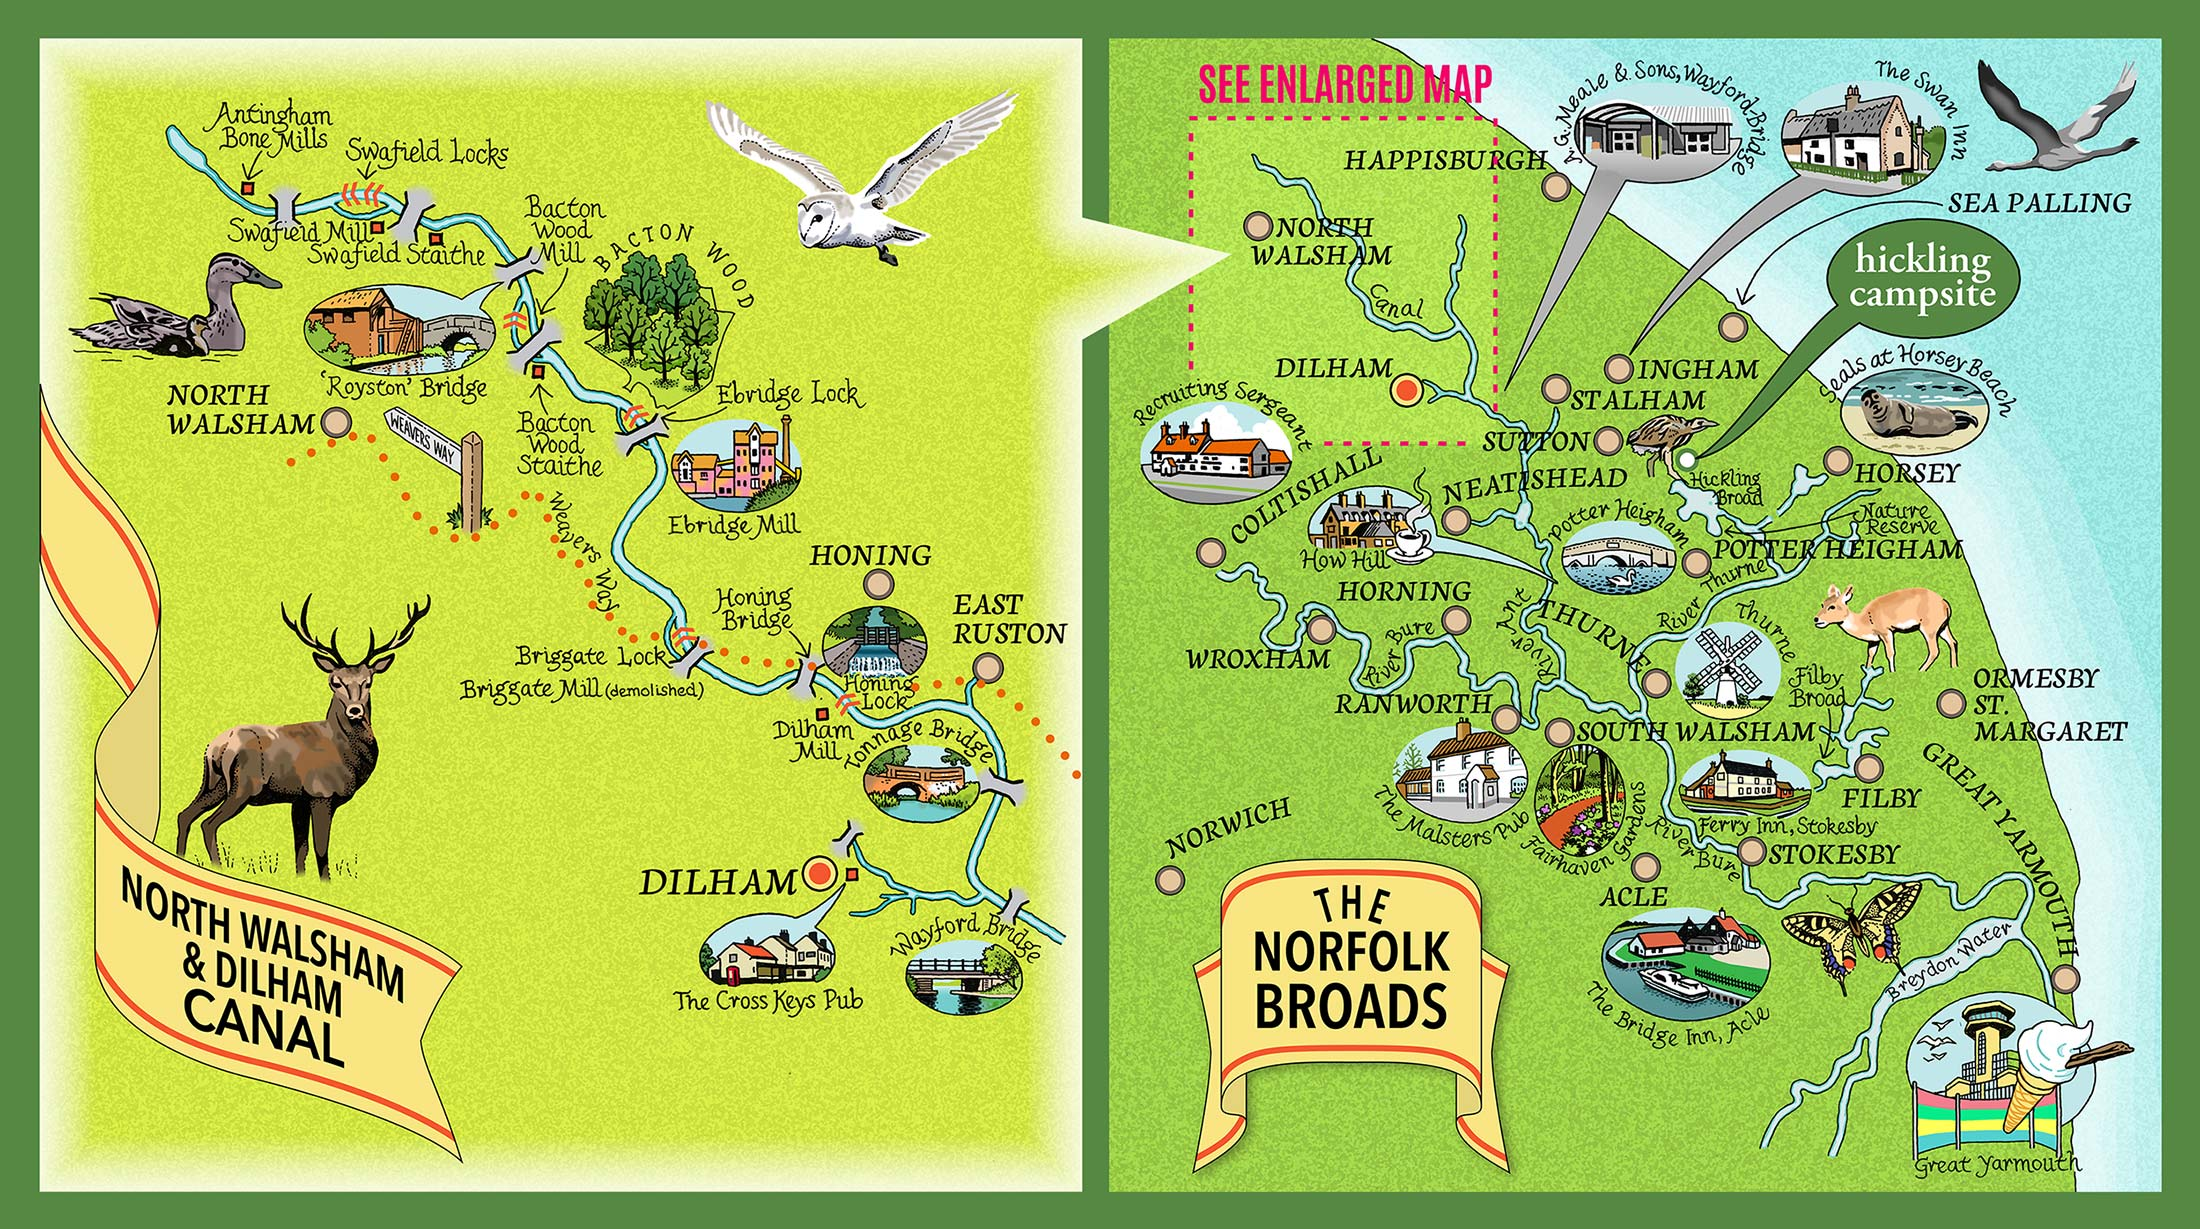 The Broads local area map